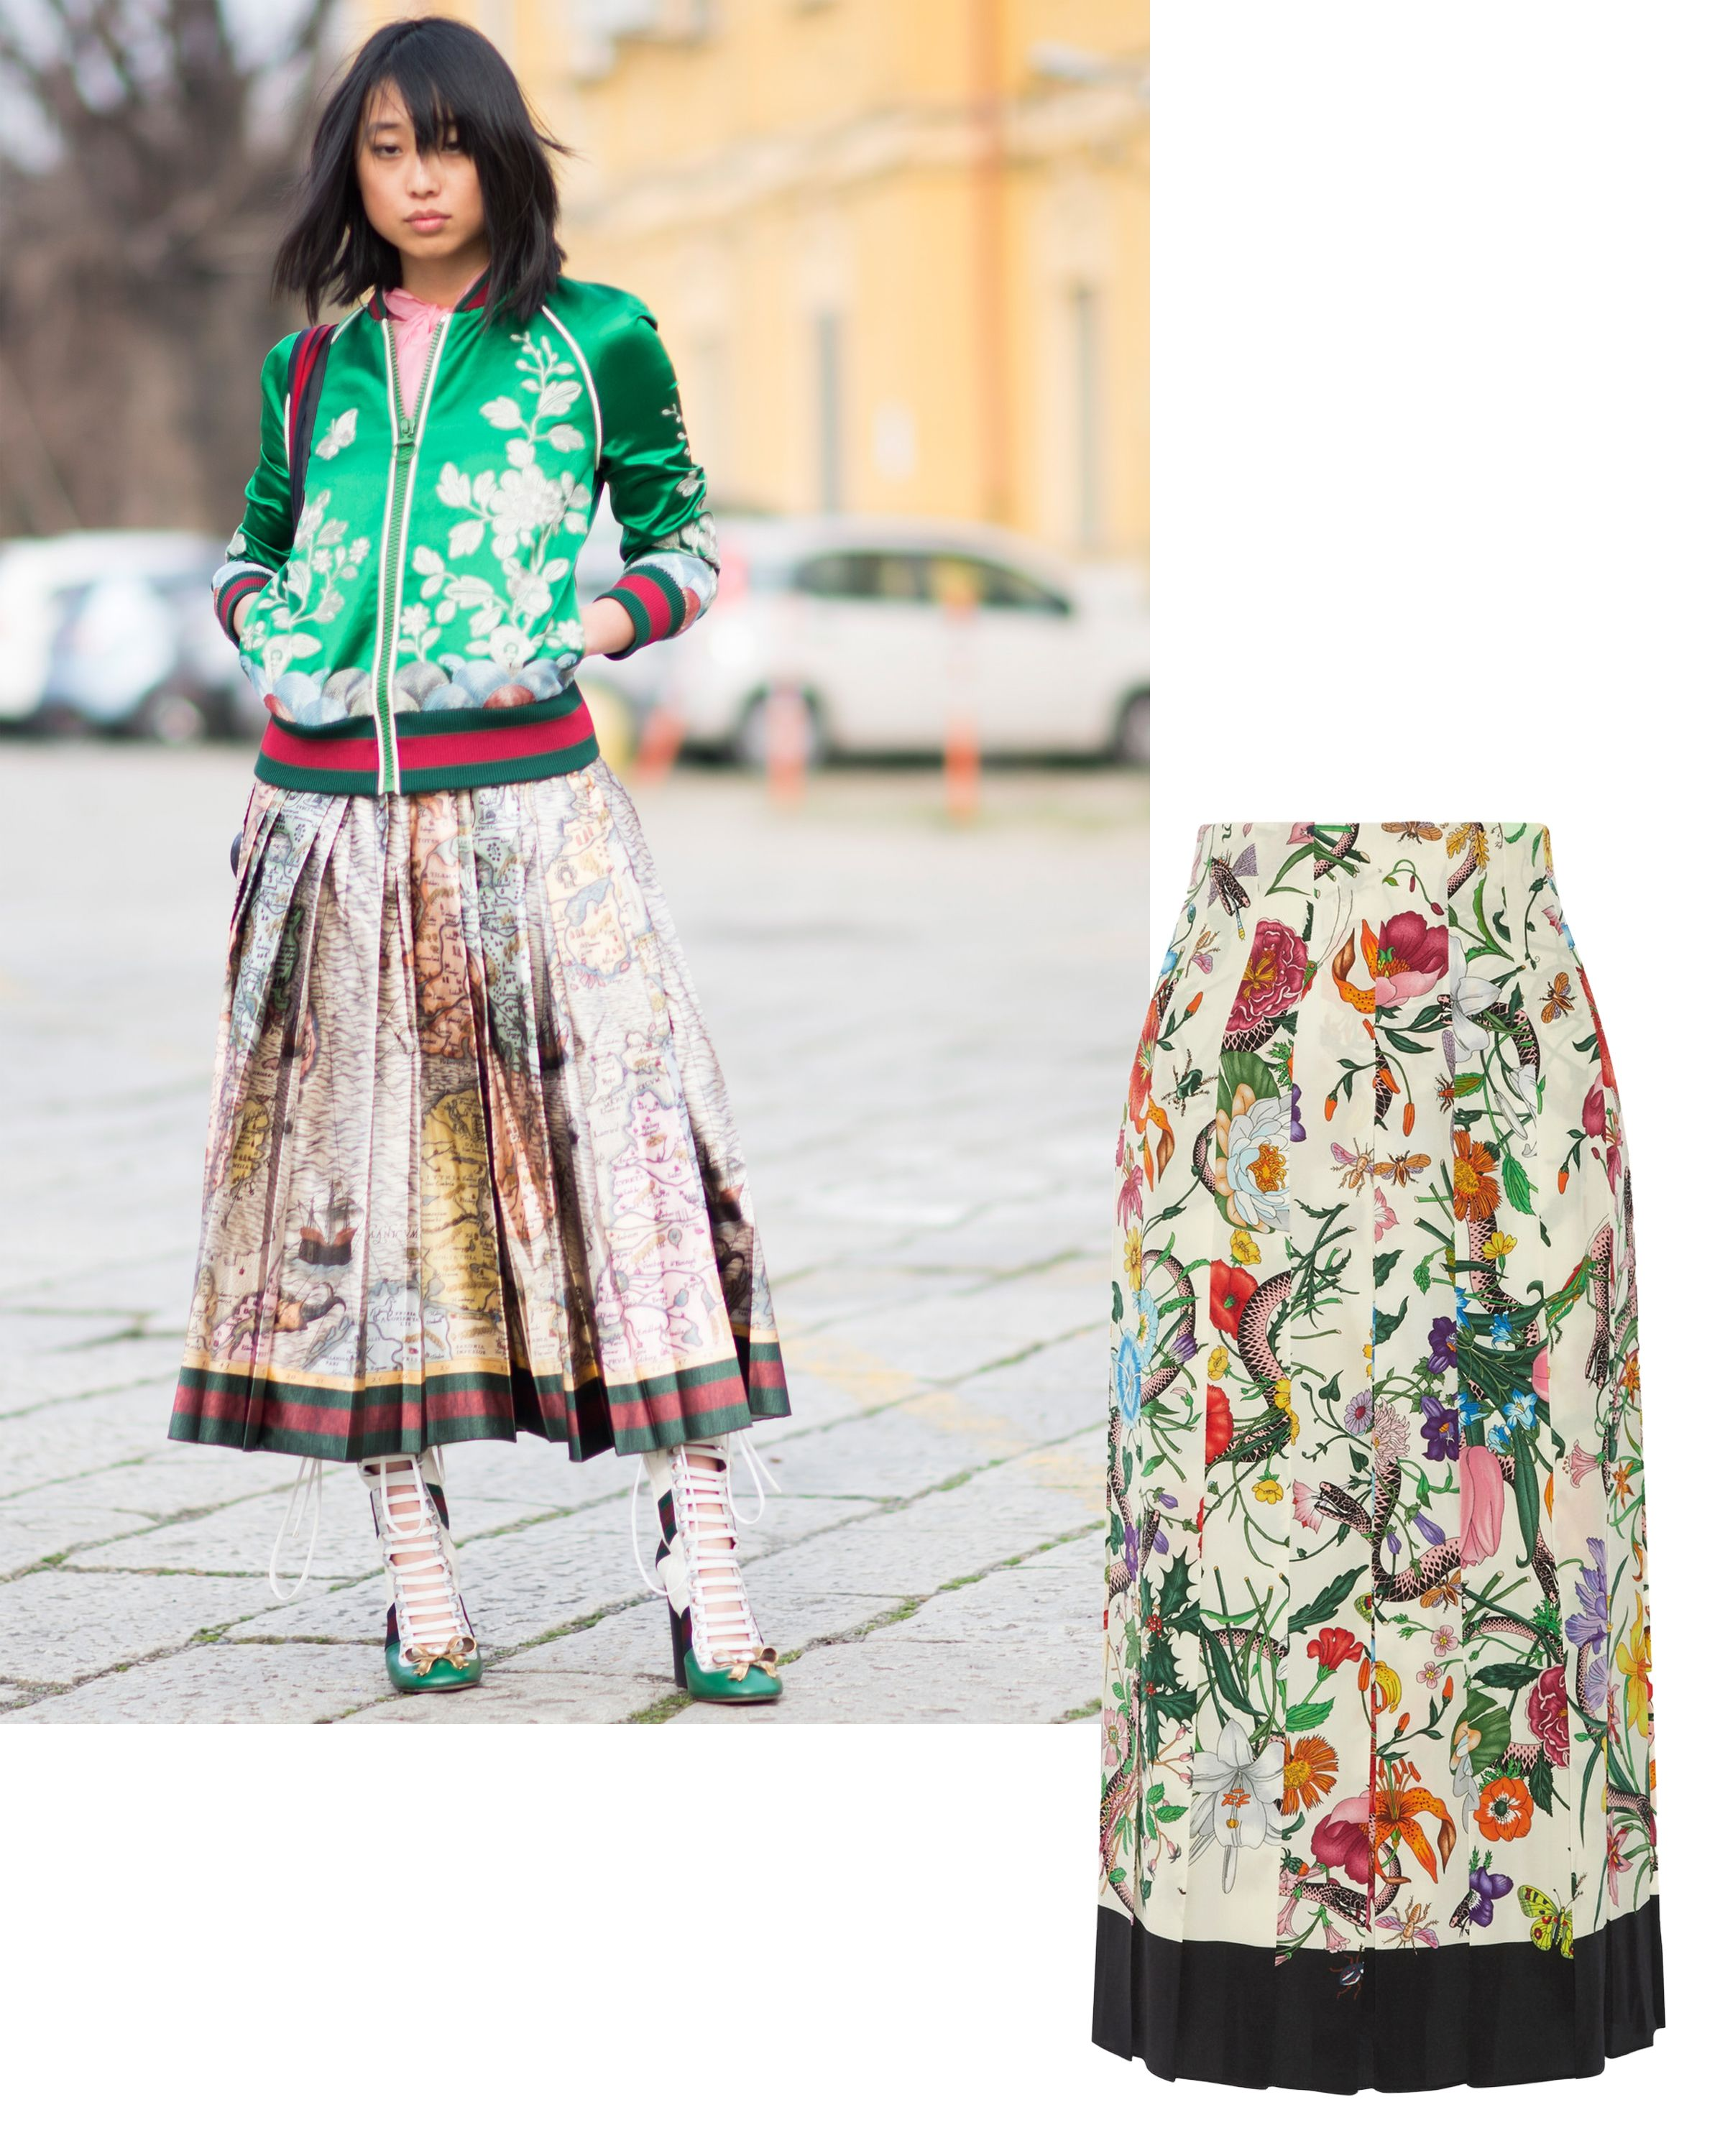 "<p>Floral patterns have been a hallmark of spring fashion forever, but they look particularly current—and office-appropriate—blooming onto structured silhouettes like an A-line midi skirt or bomber jacket in an eye-catching color. </p><p><em data-redactor-tag=""em"">Gucci skirt, <a href=""https://ad.doubleclick.net/ddm/clk/319401354;148059560;d"" target=""_blank"" data-tracking-id=""recirc-text-link"">NET-A-PORTER.com</a>.</em></p>"